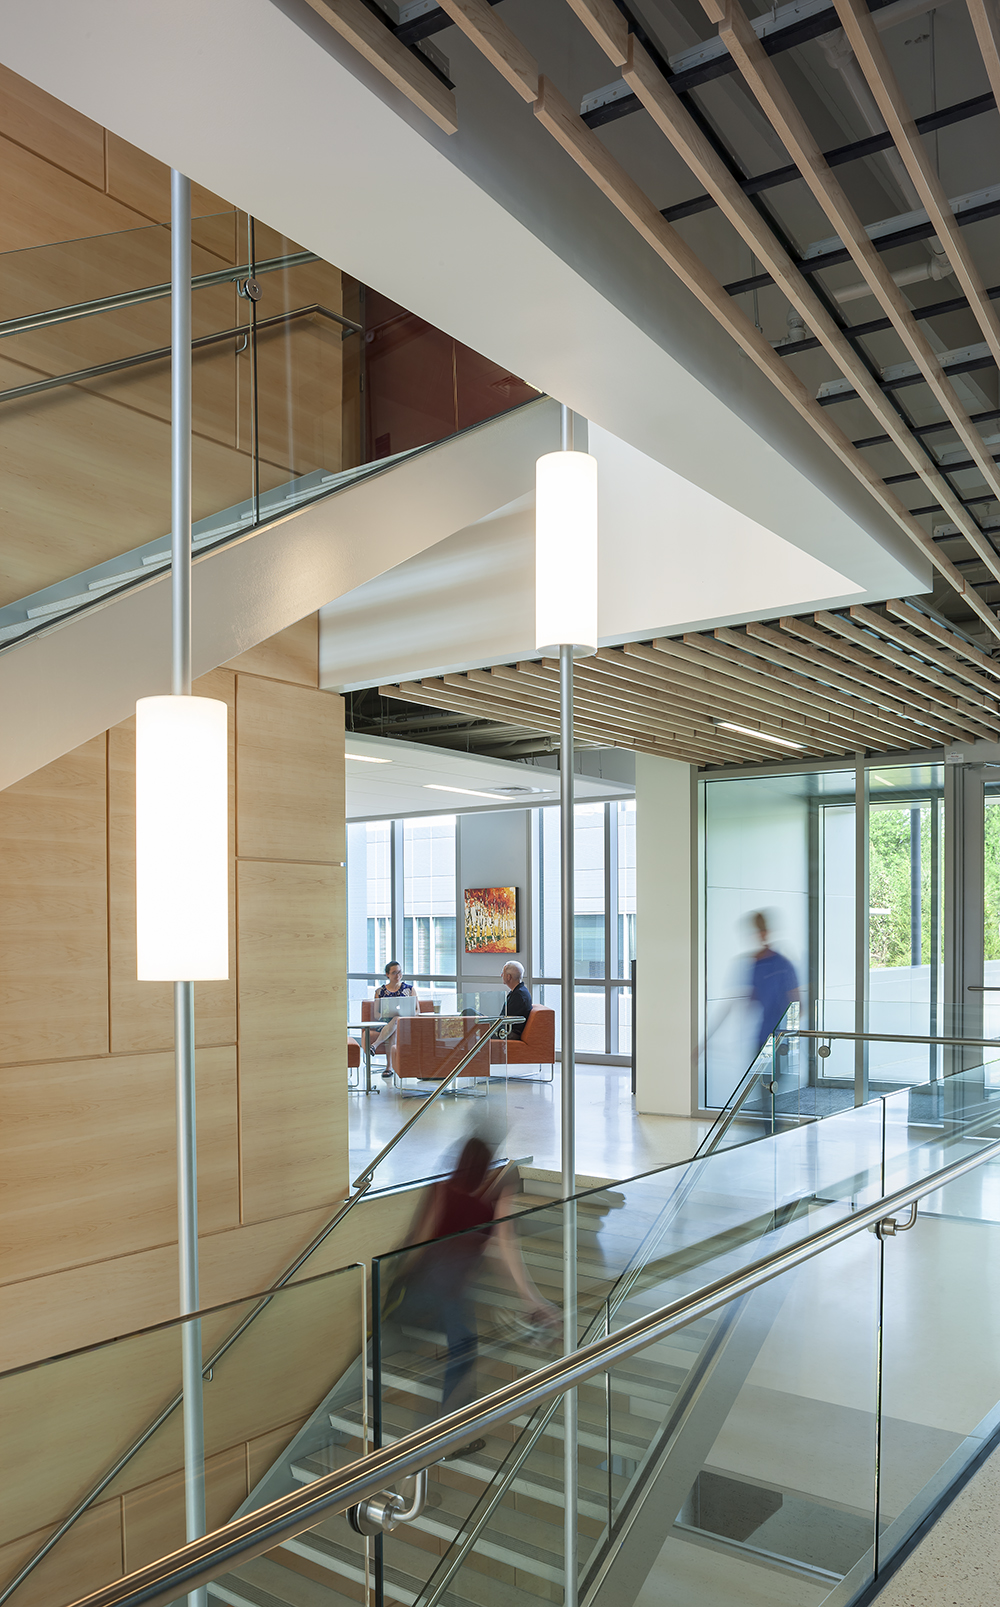 Sequence pendants enhance educational interior design in a tandem-mount configuration for a modern campus building stairwell.